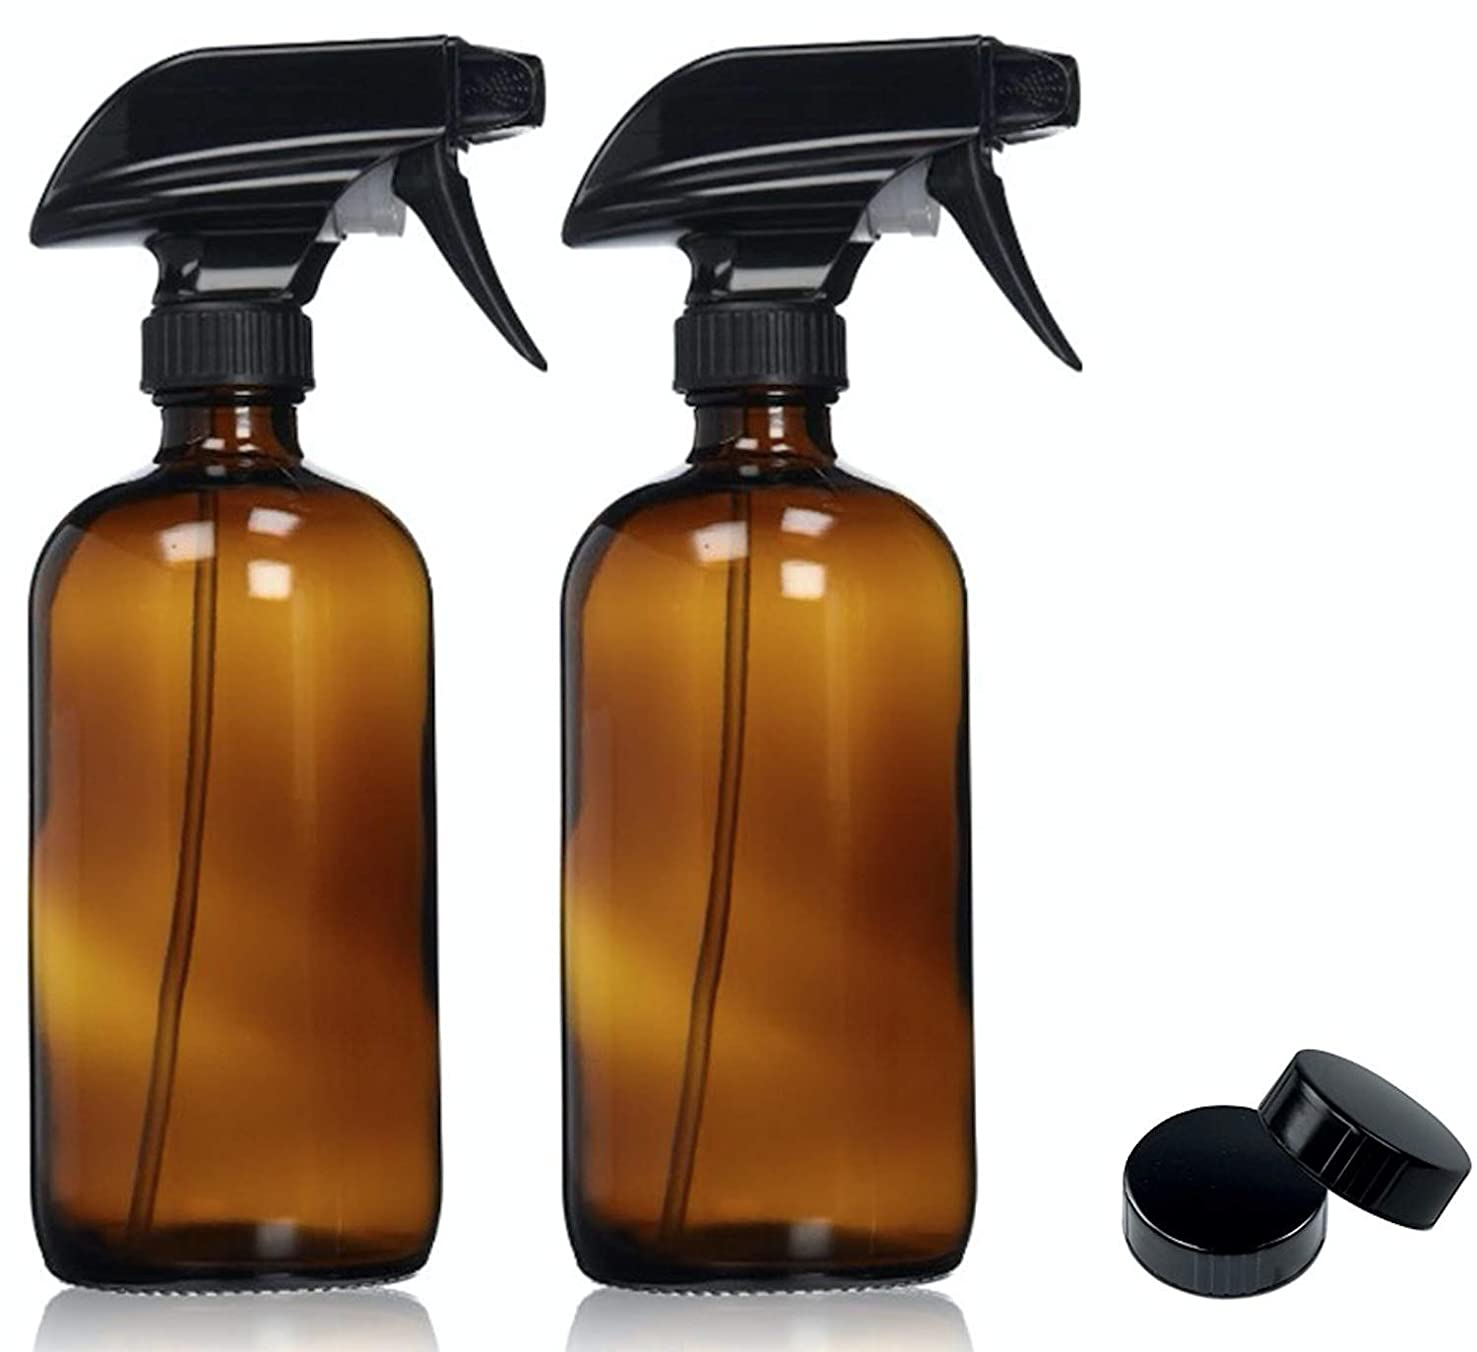 Glass Spray Bottles (2 Pack) - Ganoteck 16oz Refillable Container for Essential Oils, Cleaning Products, or Aromatherapy - Durable Black Trigger Sprayer w/Mist and Stream Settings